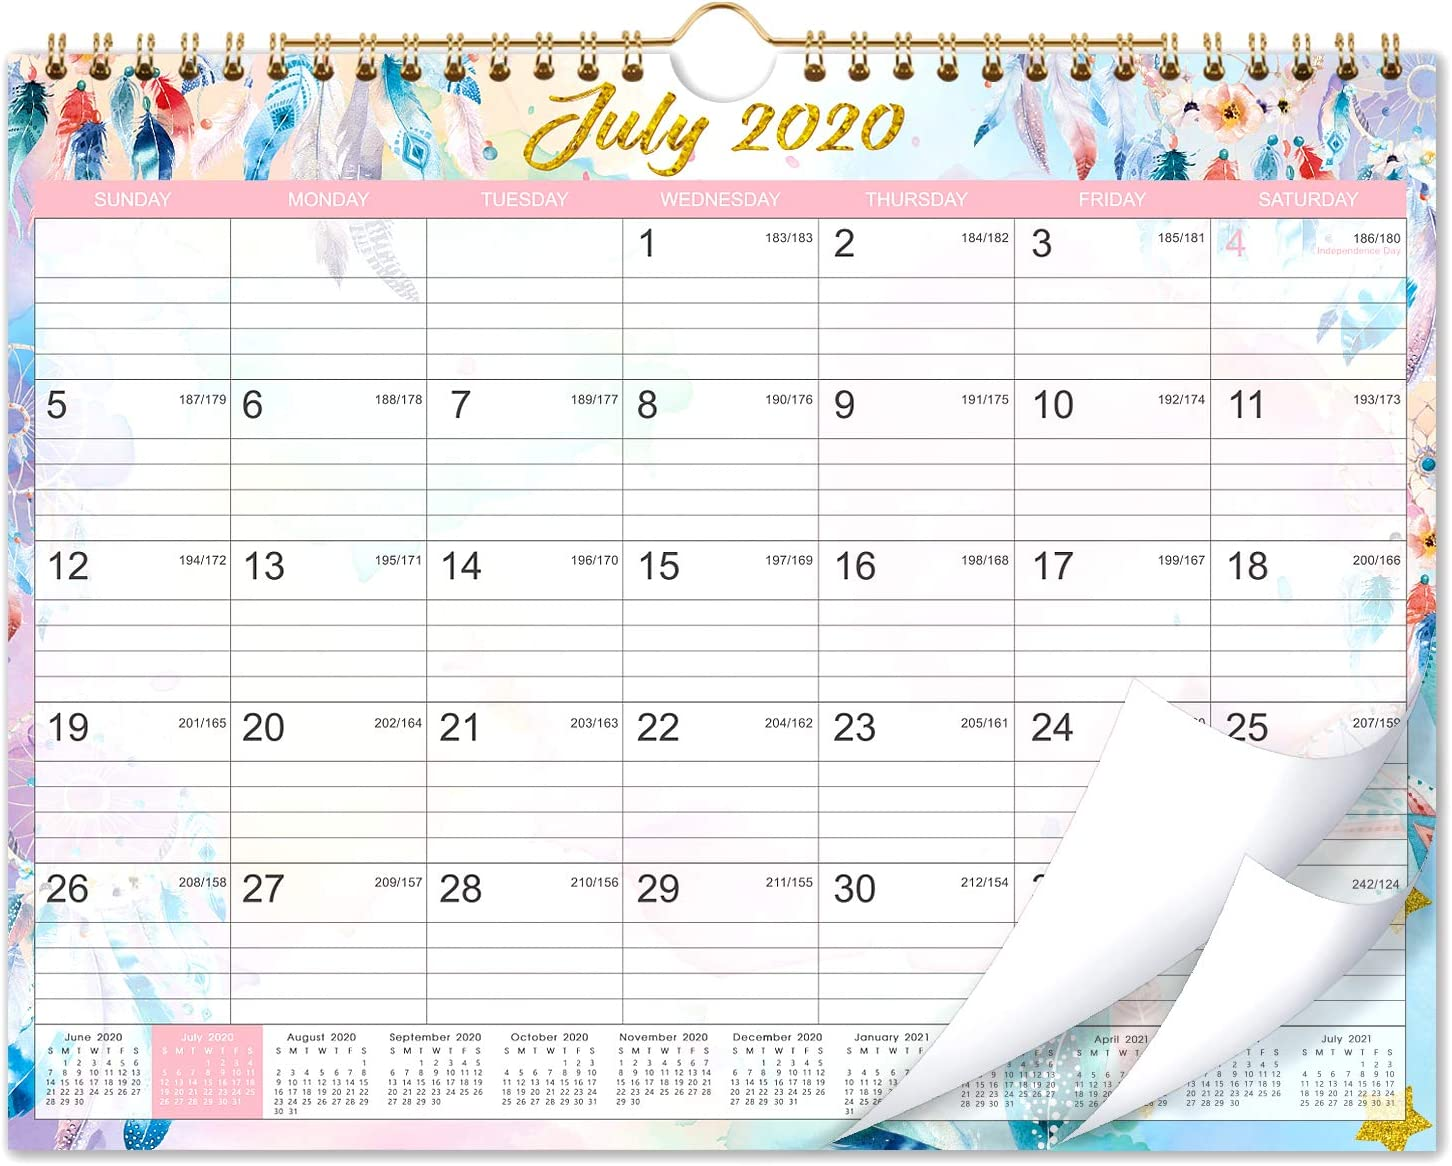 """Calendar 2020-2021 - 18 Months Wall Calendar 2020-2021 with Julian Date, 11""""x 8.5"""", Jul 2020-Dec 2021, Wire-Bound, Colorful Monthly Calendar, Perfect for School, Office & Home Planning & Organizing"""